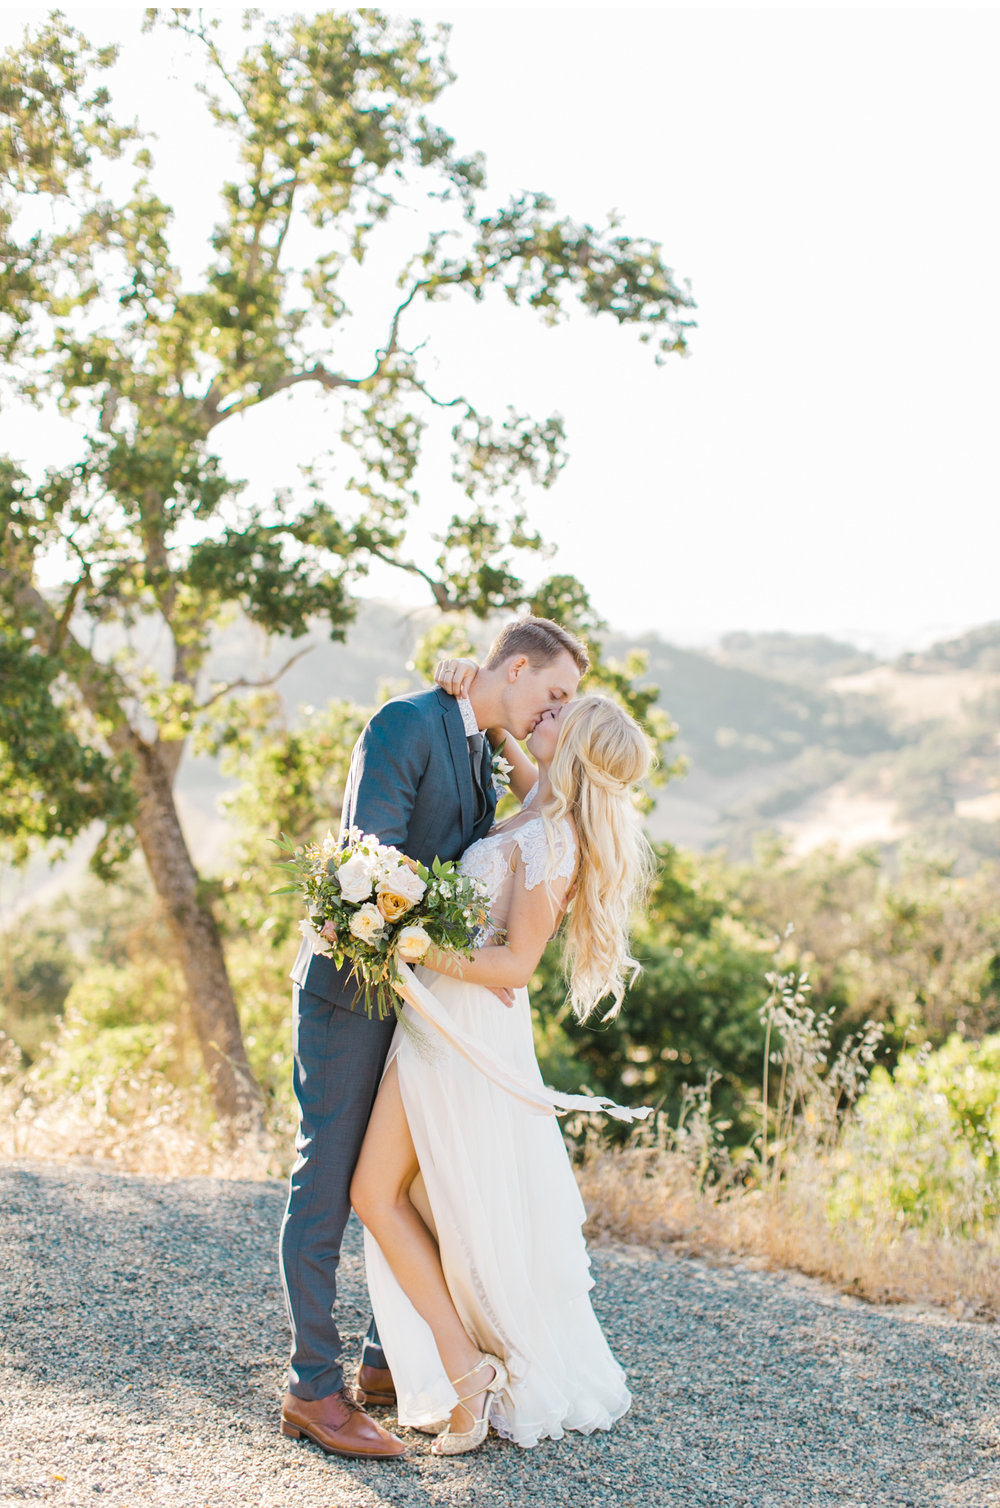 Natalie-Schutt-Photography's-Wedding-Style-Me-Pretty-Paso-Robles_14.jpg